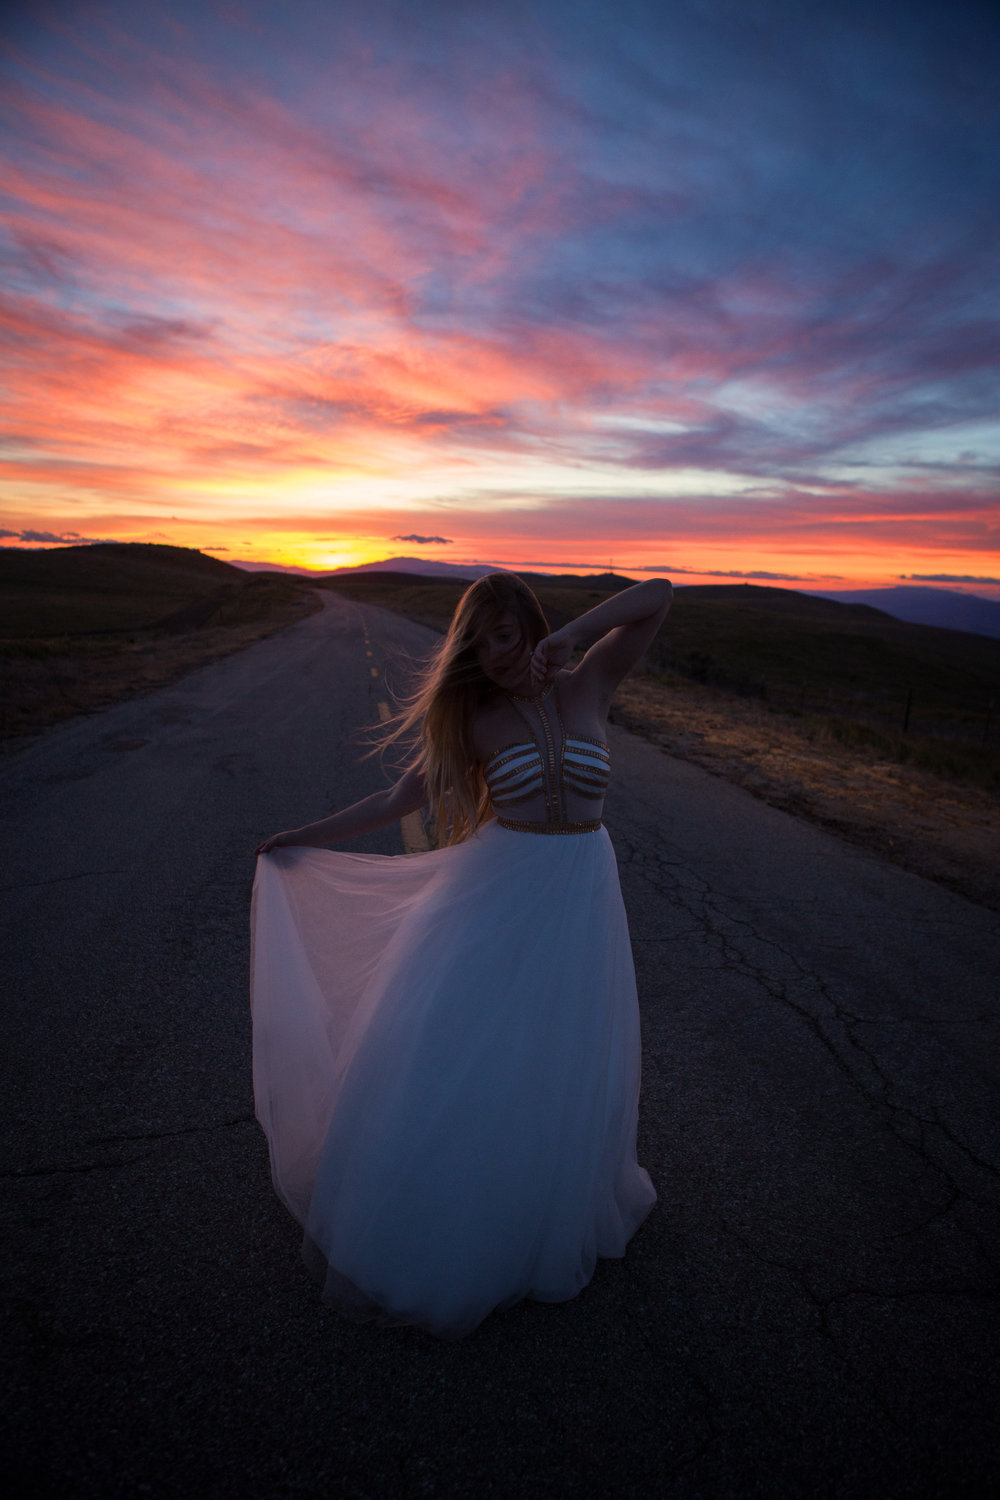 AstroBandit_MadisonJames_WhiteDress_LosPadresNationalForest_15.jpg